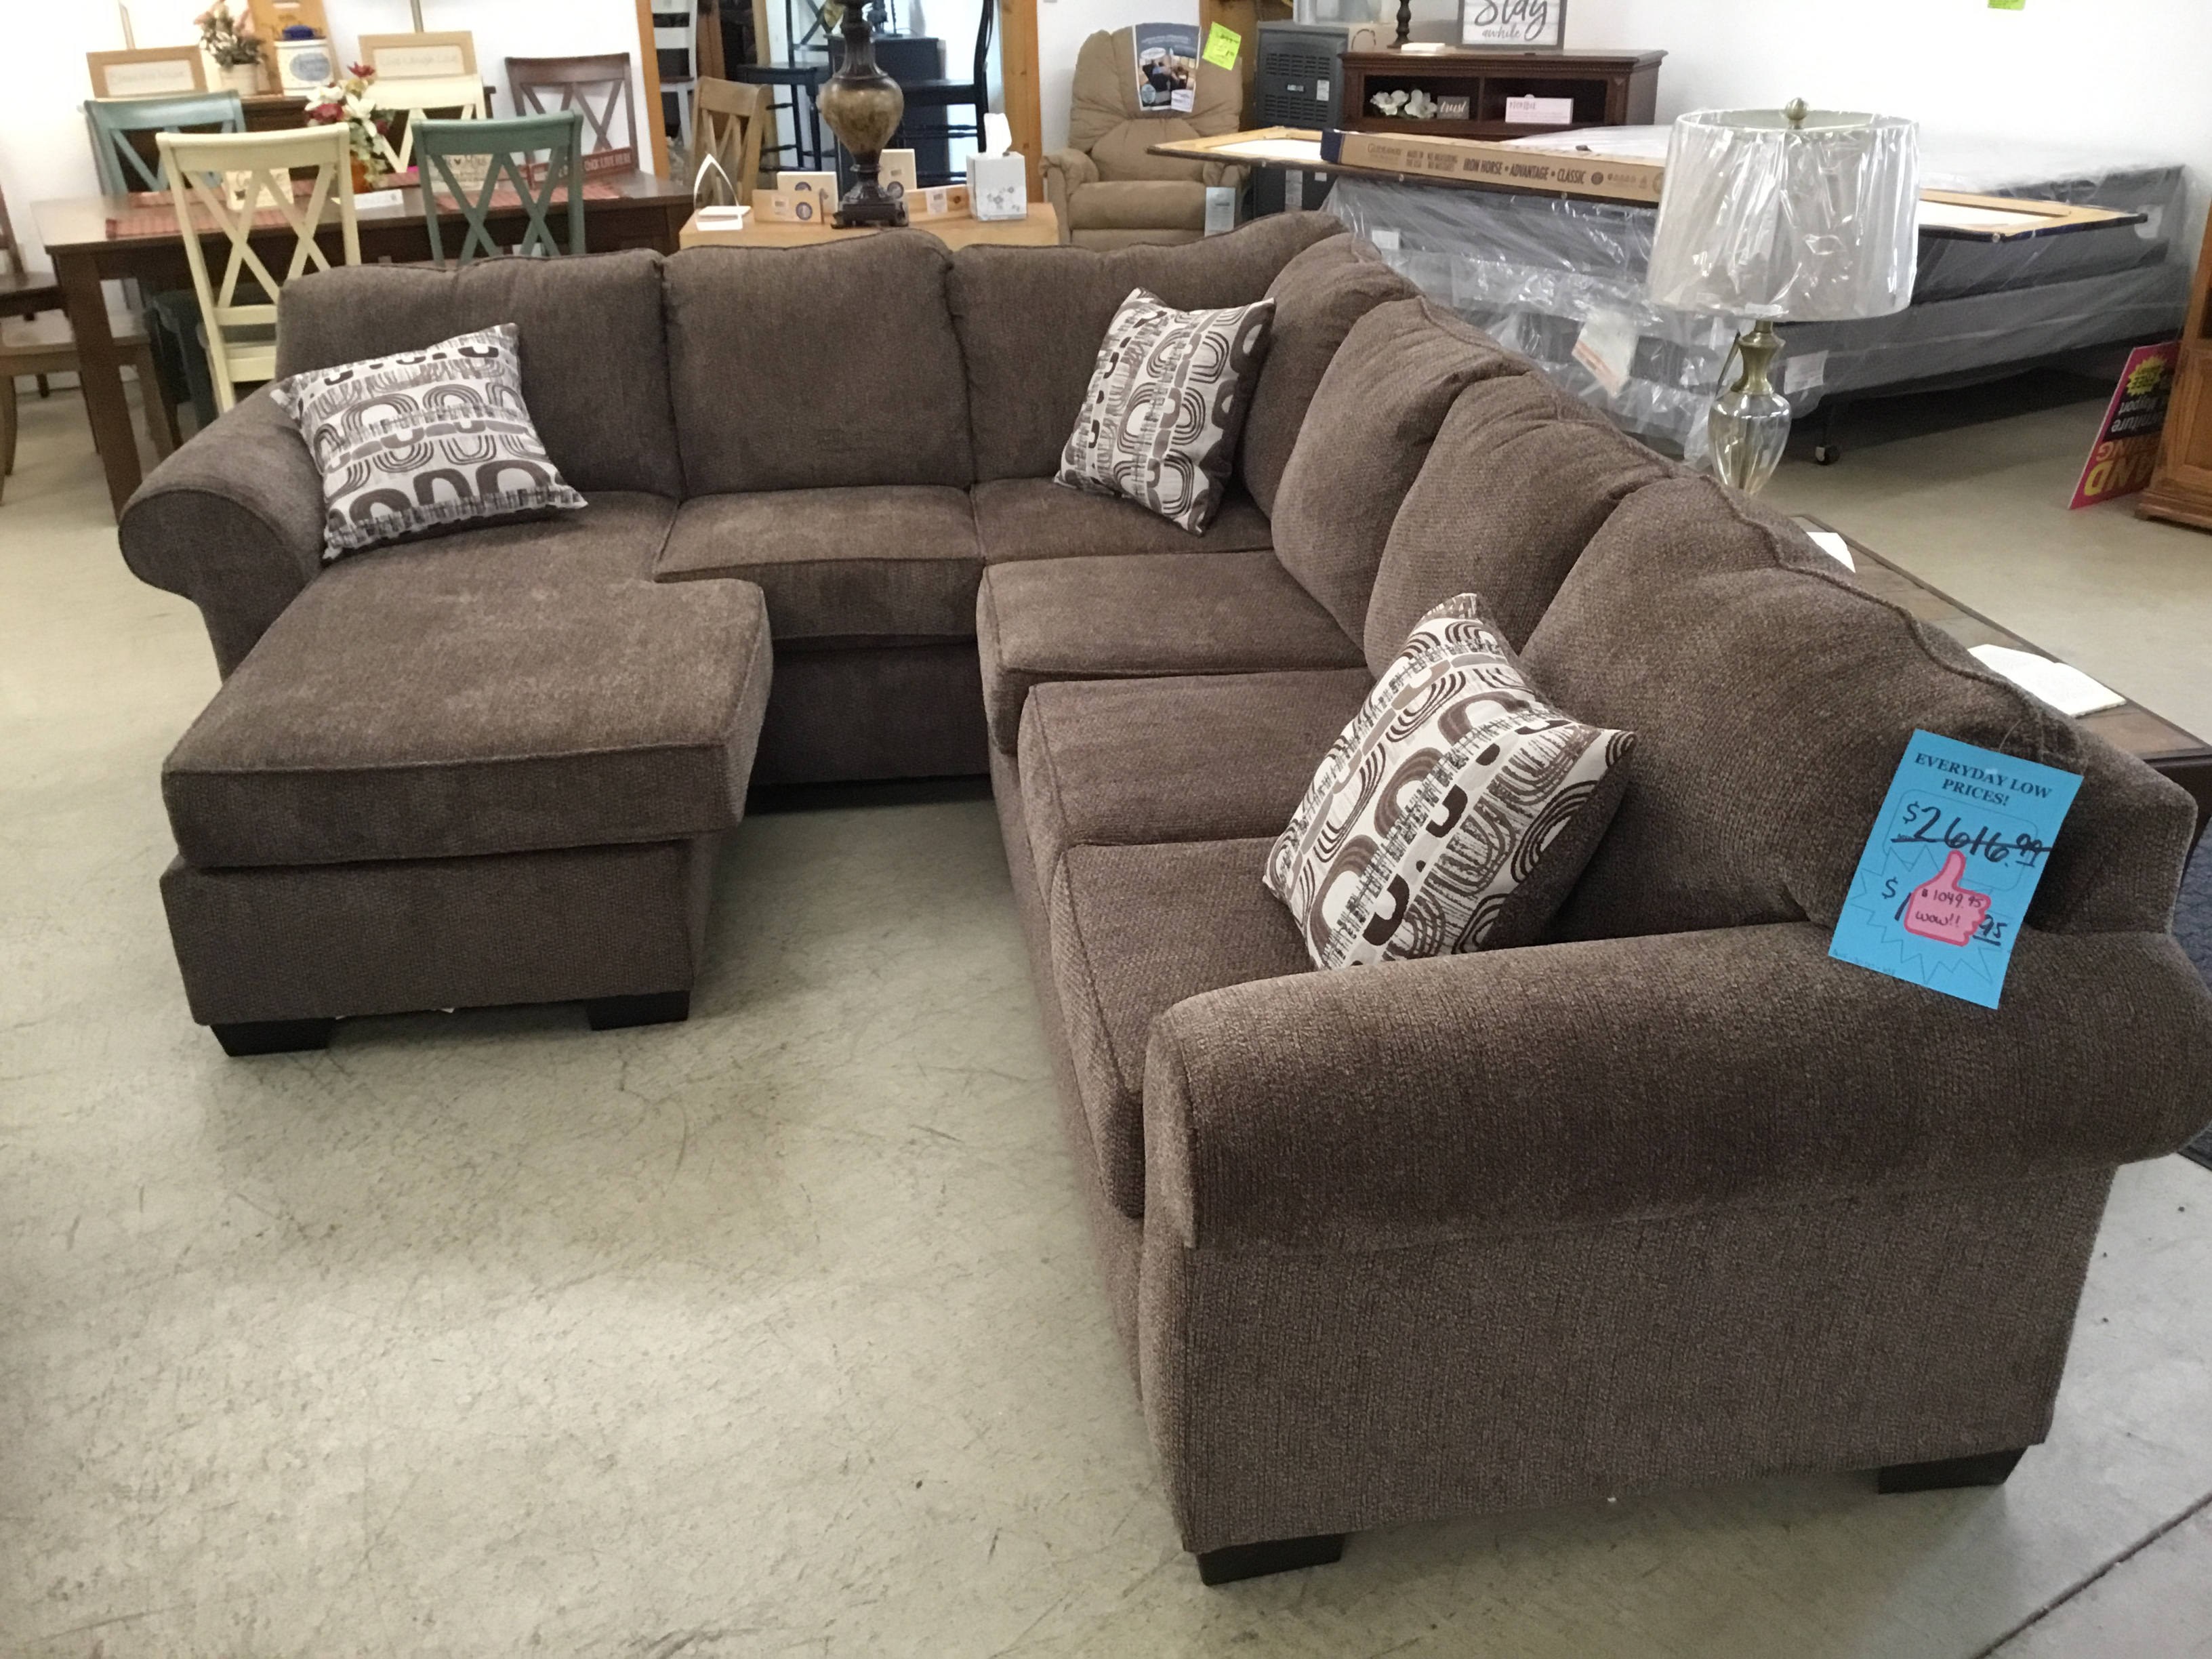 Freedom Furniture Sofa Explorejeffersonpa Sponsored Storewide Summer